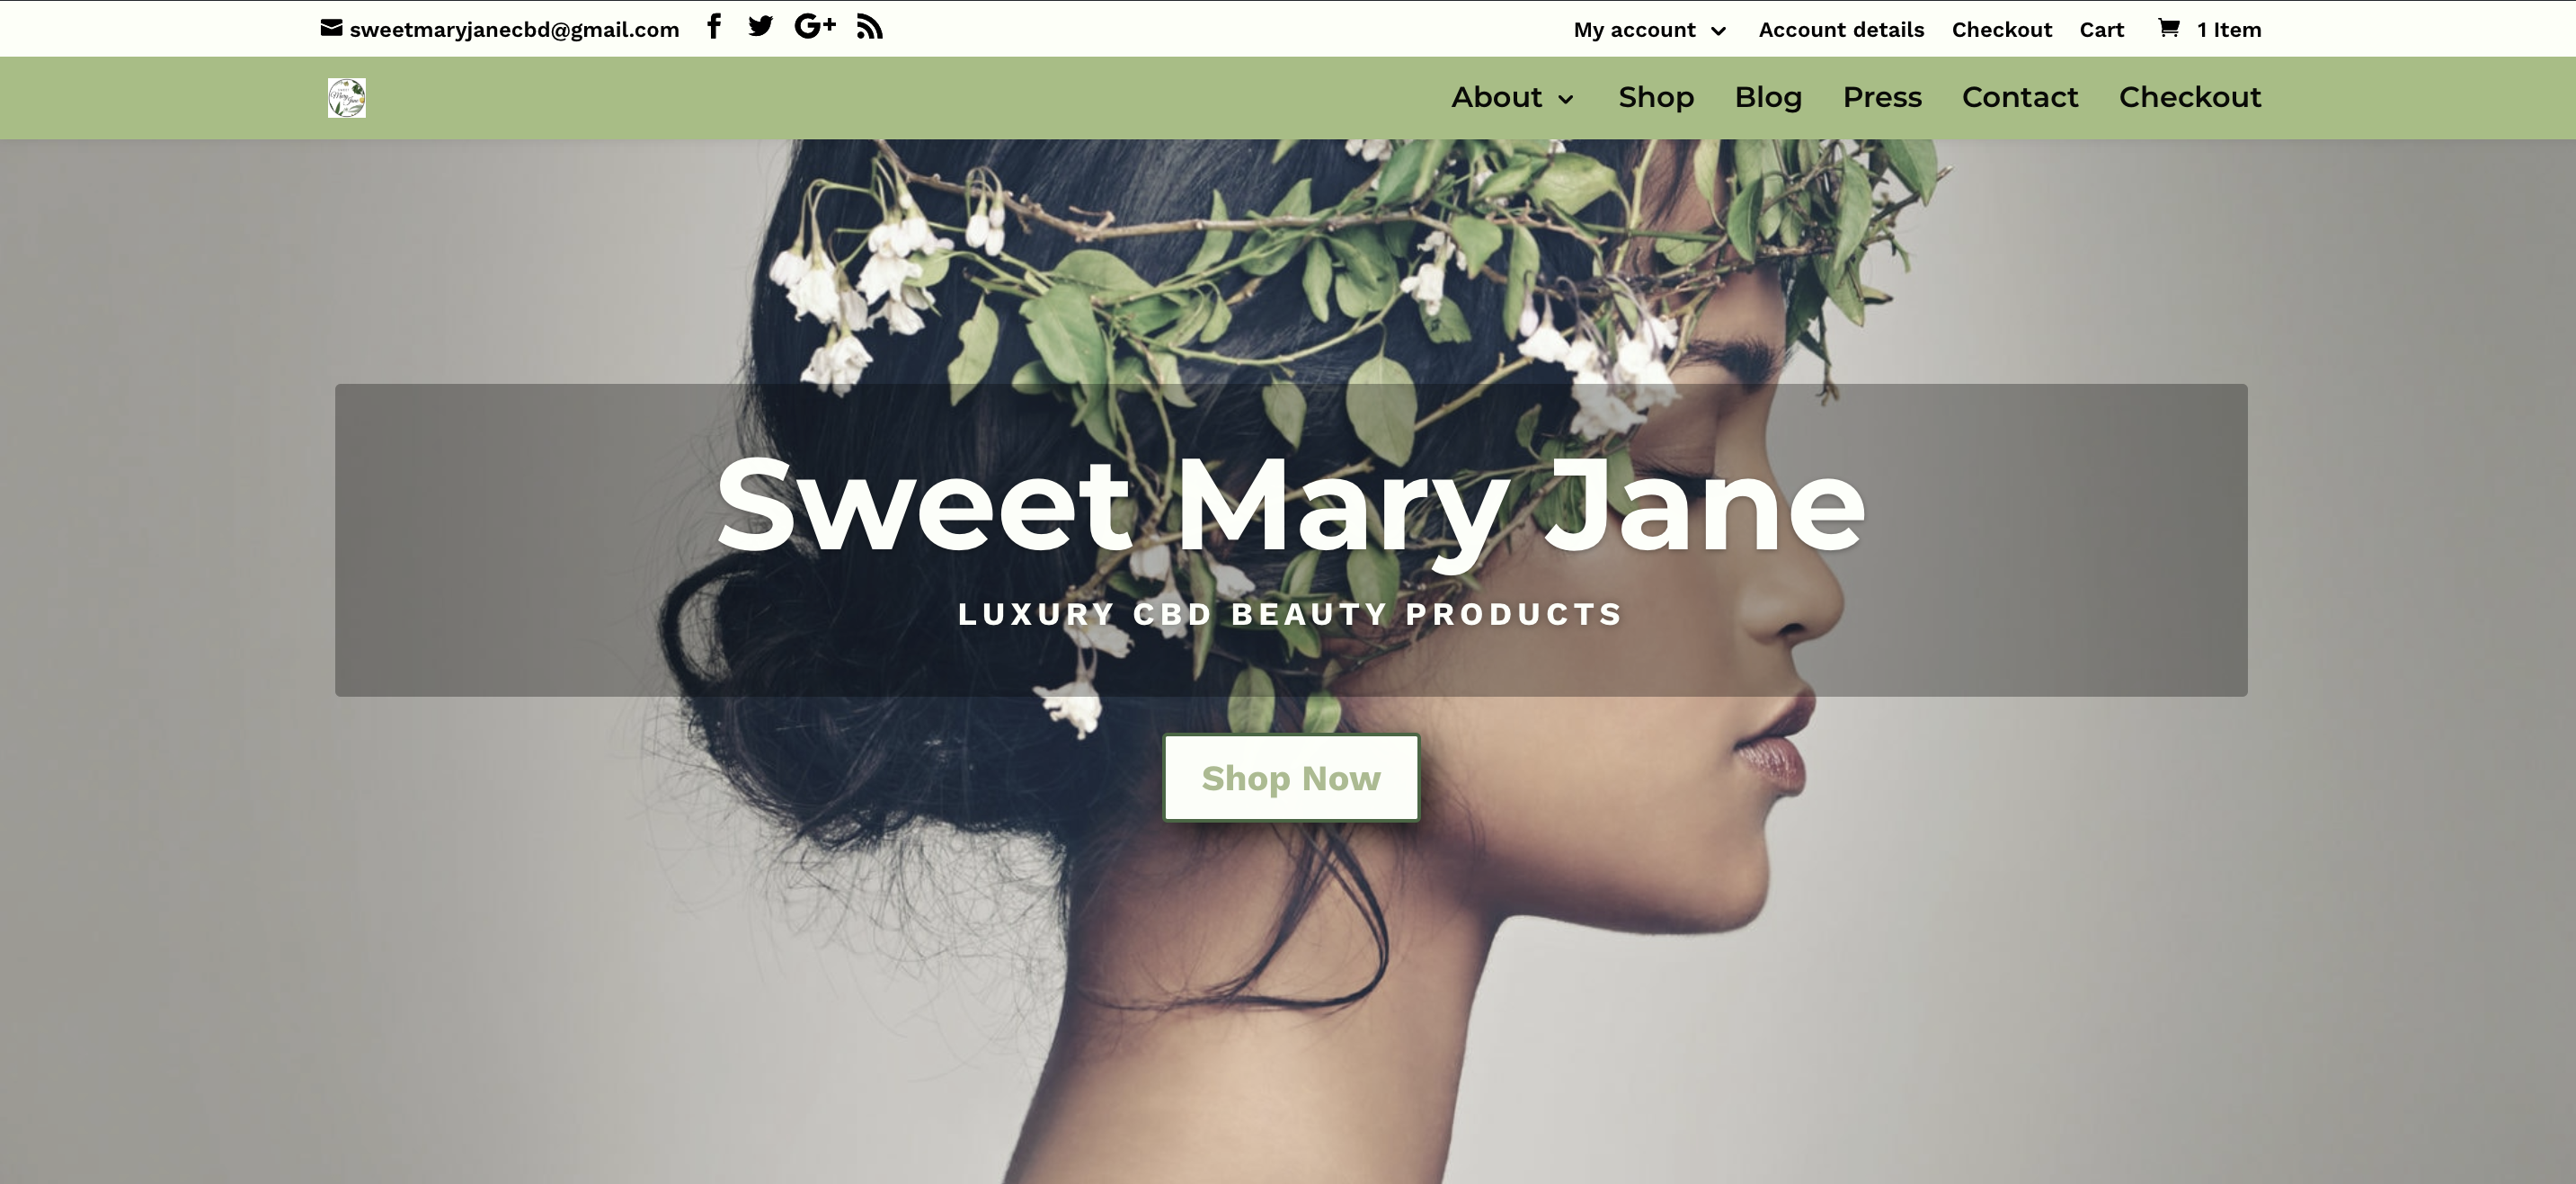 sweet mary jane desktop website